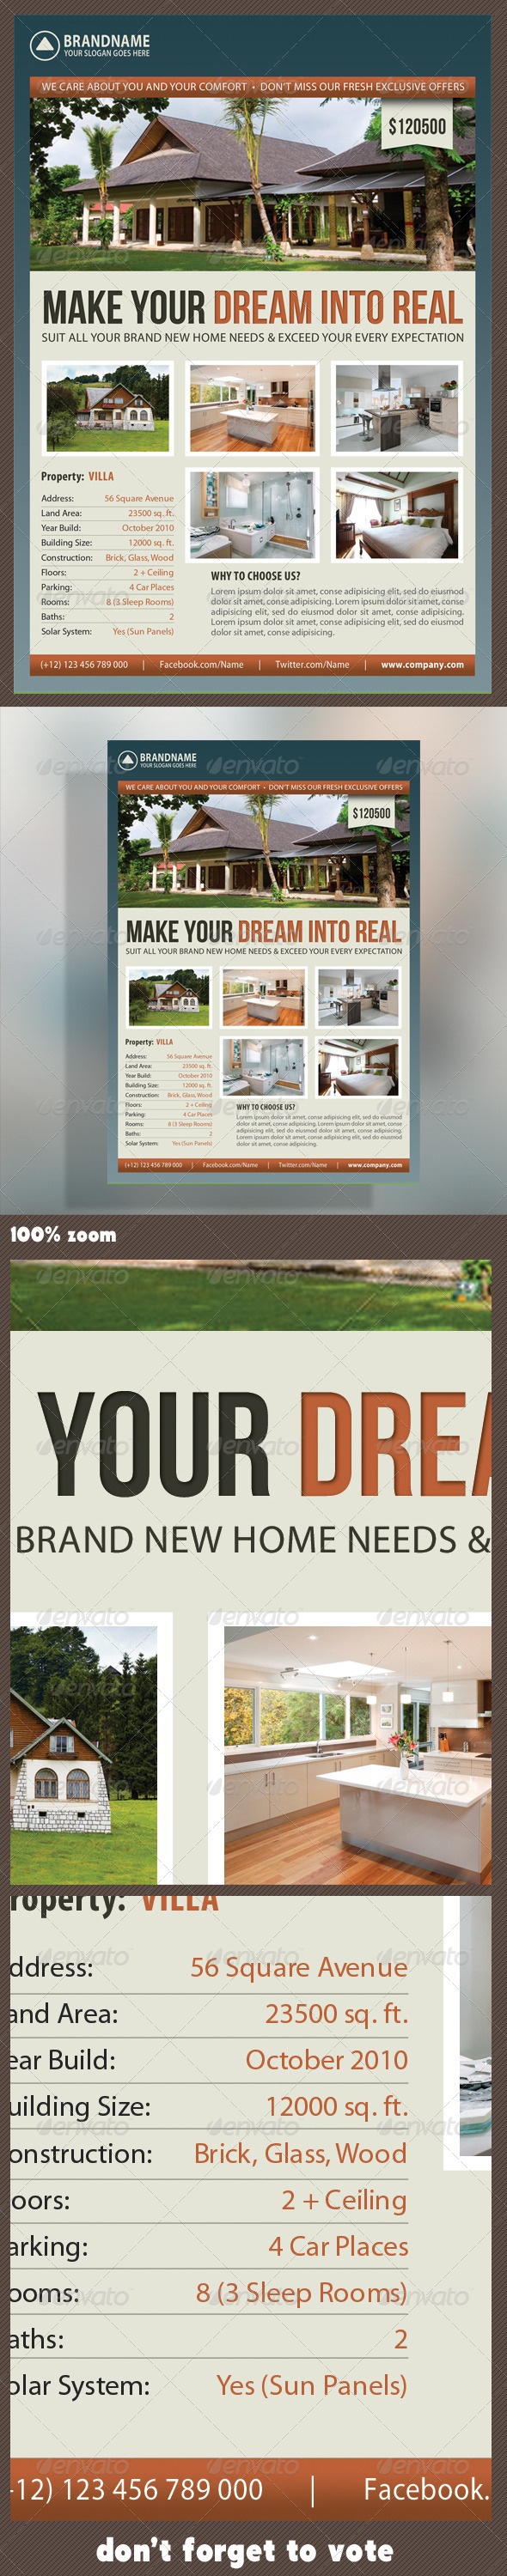 Real Estate Corporate Flyer 05 - Commerce Flyers